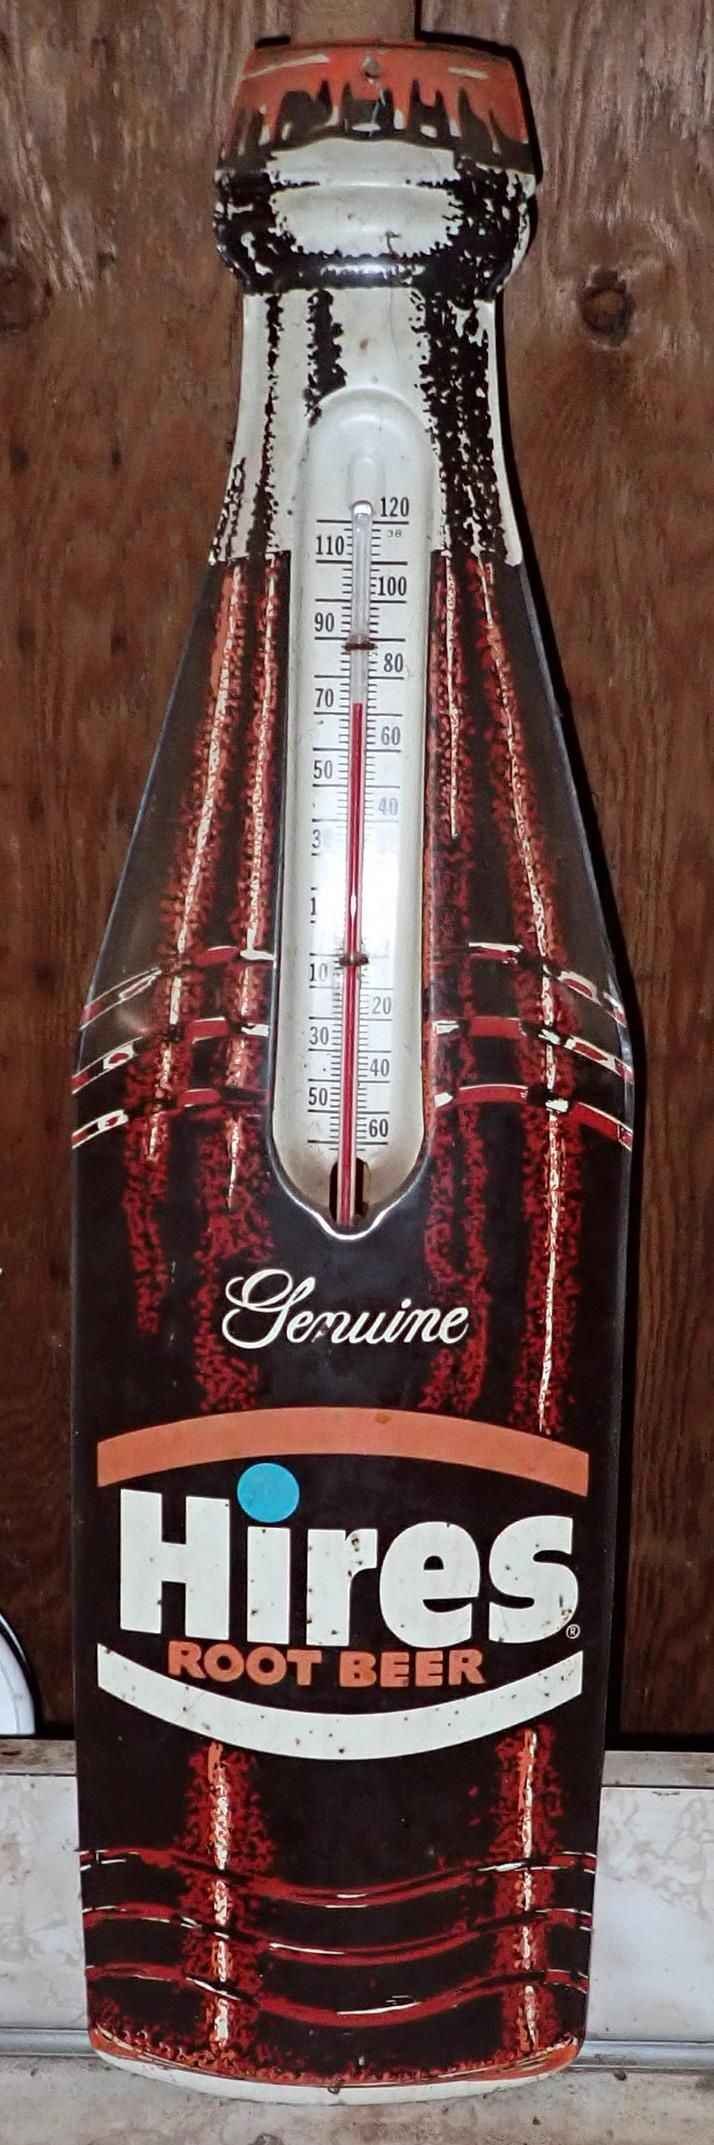 Hires Root Beer Thermometer Sign